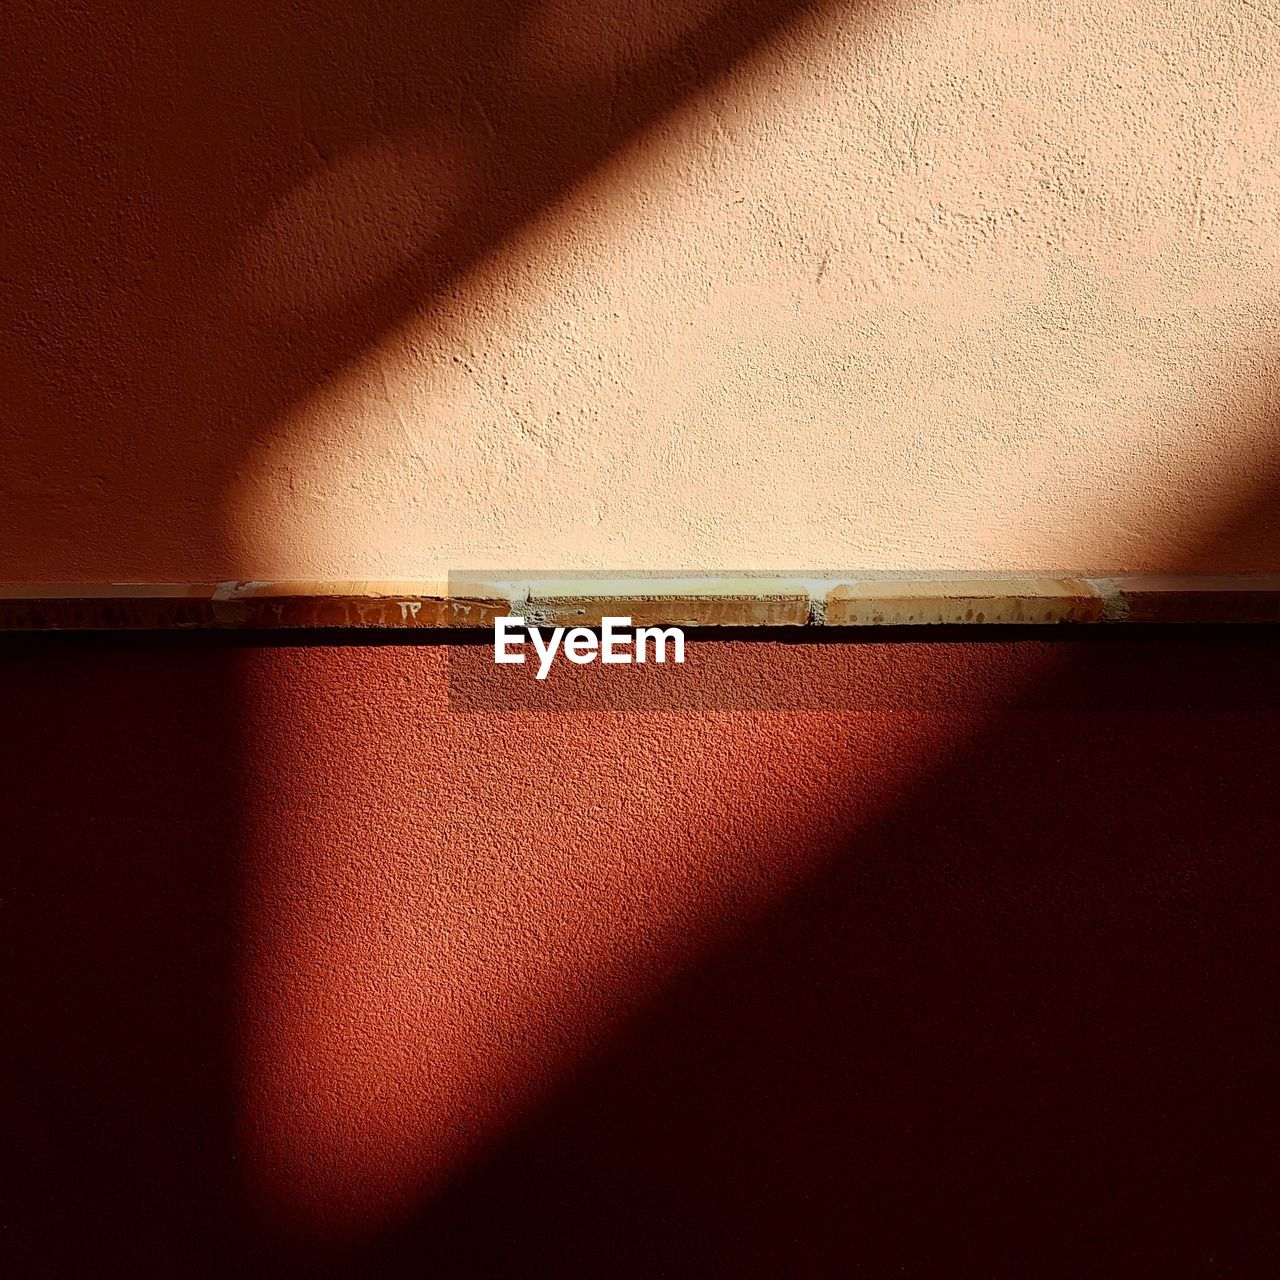 no people, textured, brown, shadow, architecture, red, close-up, indoors, day